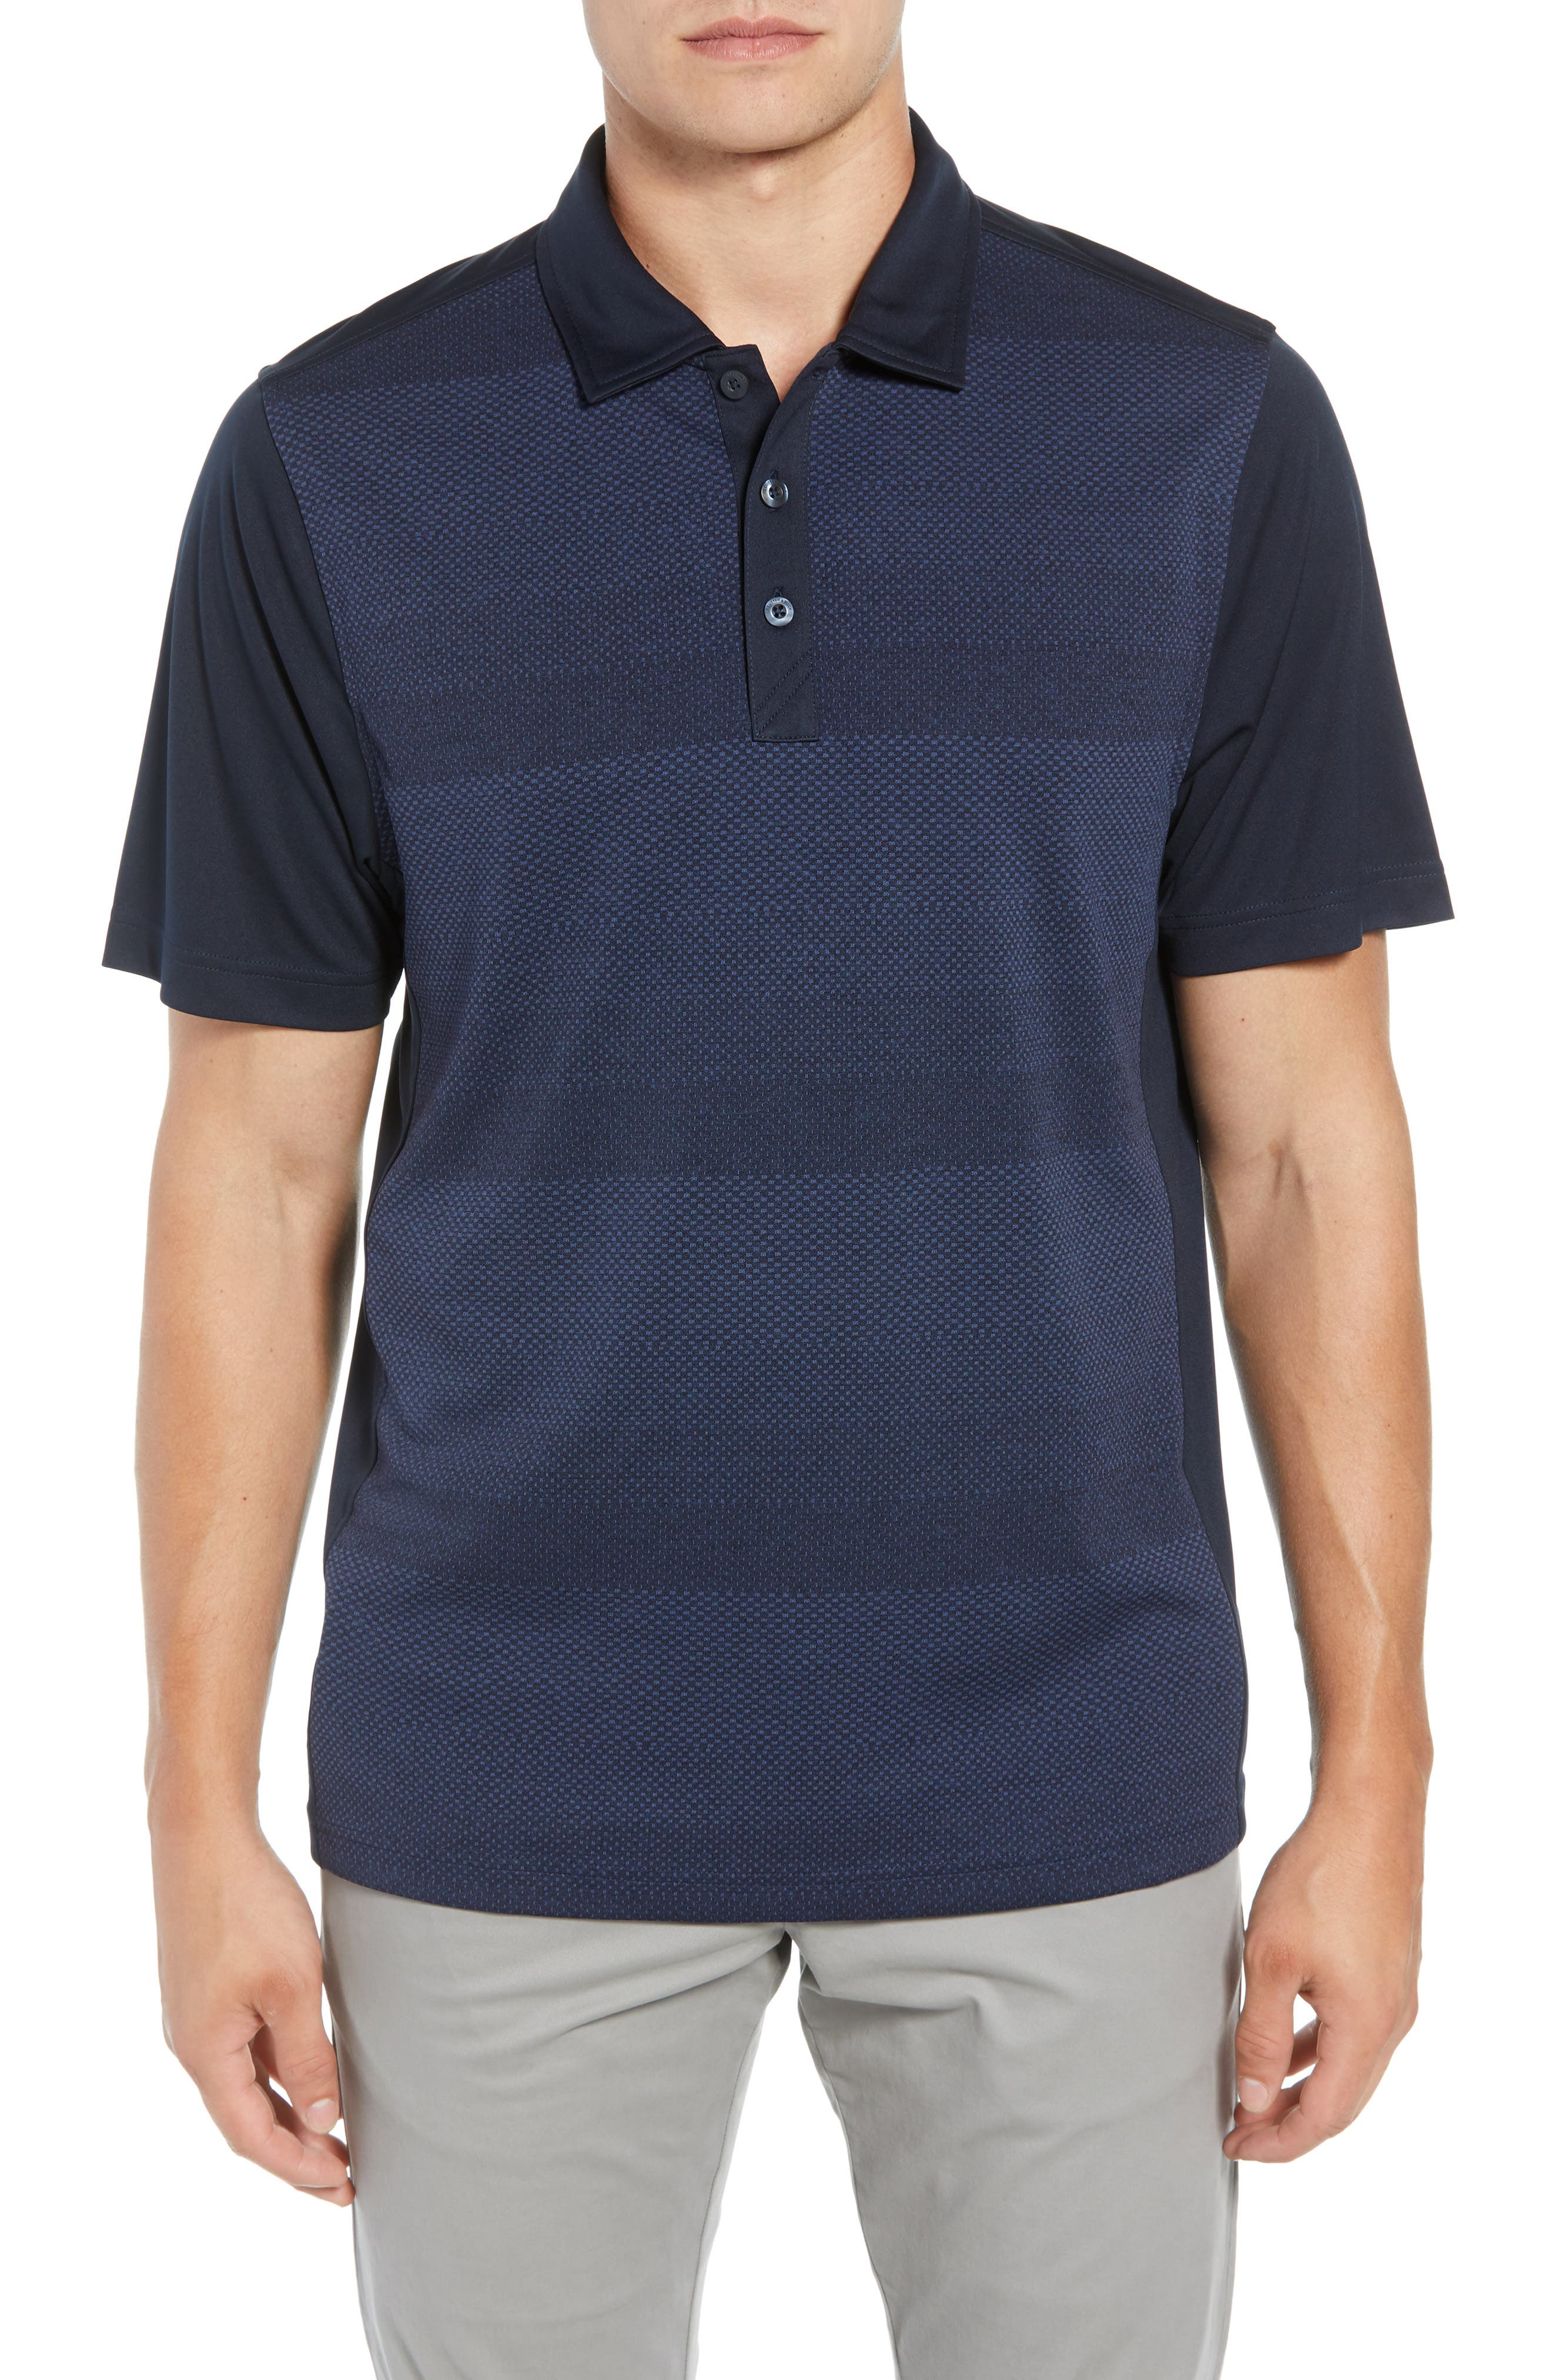 Crescent DryTec Microprint Polo,                         Main,                         color, LIBERTY NAVY